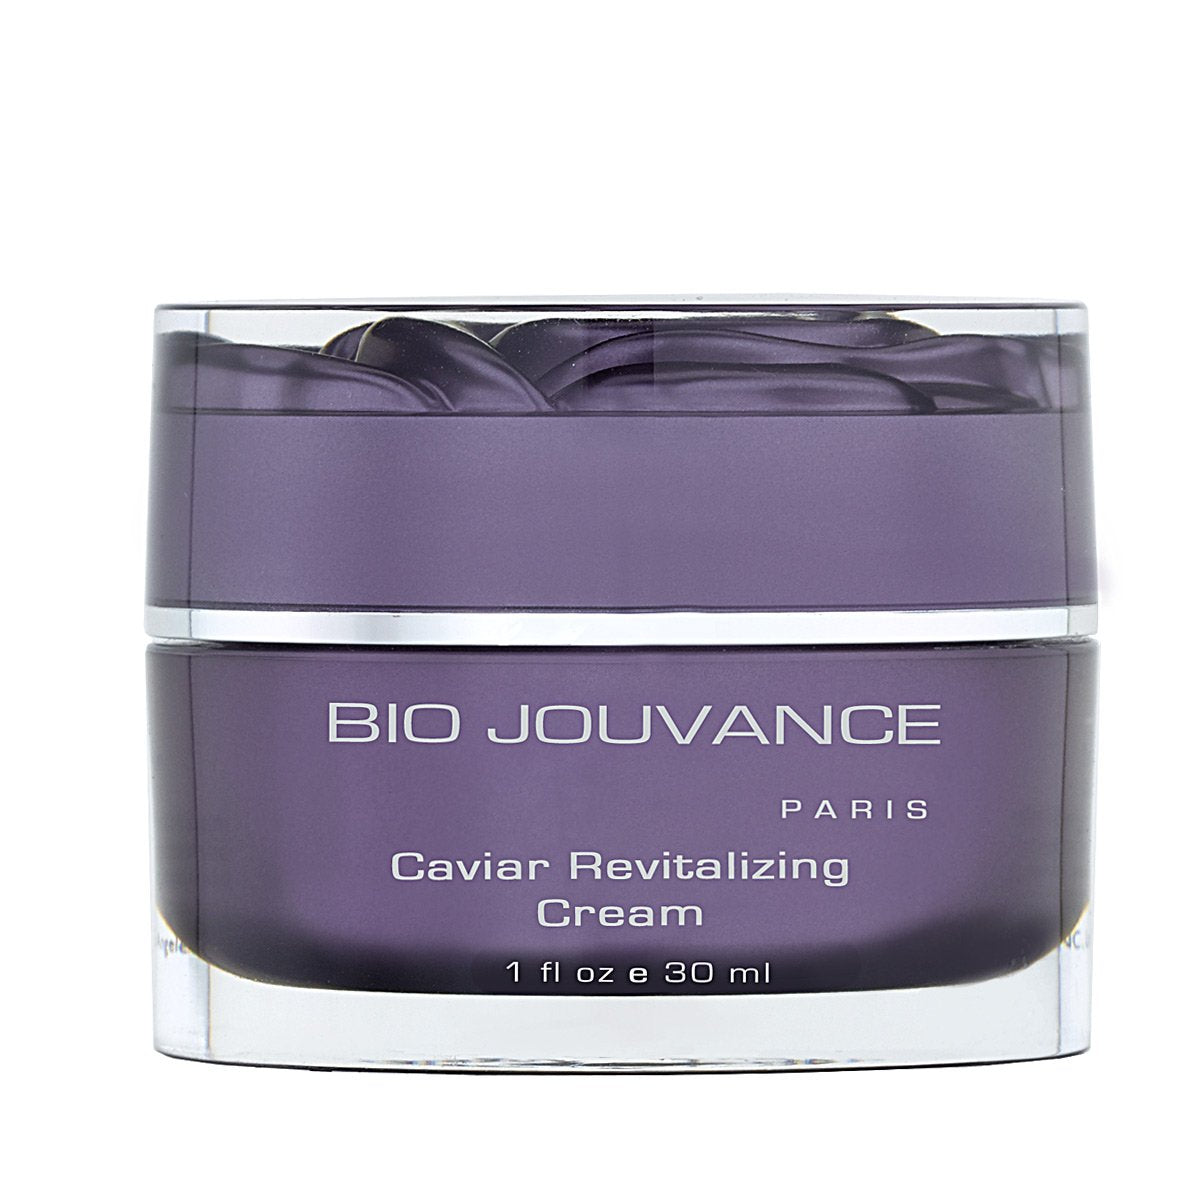 Caviar Revitalizing Cream